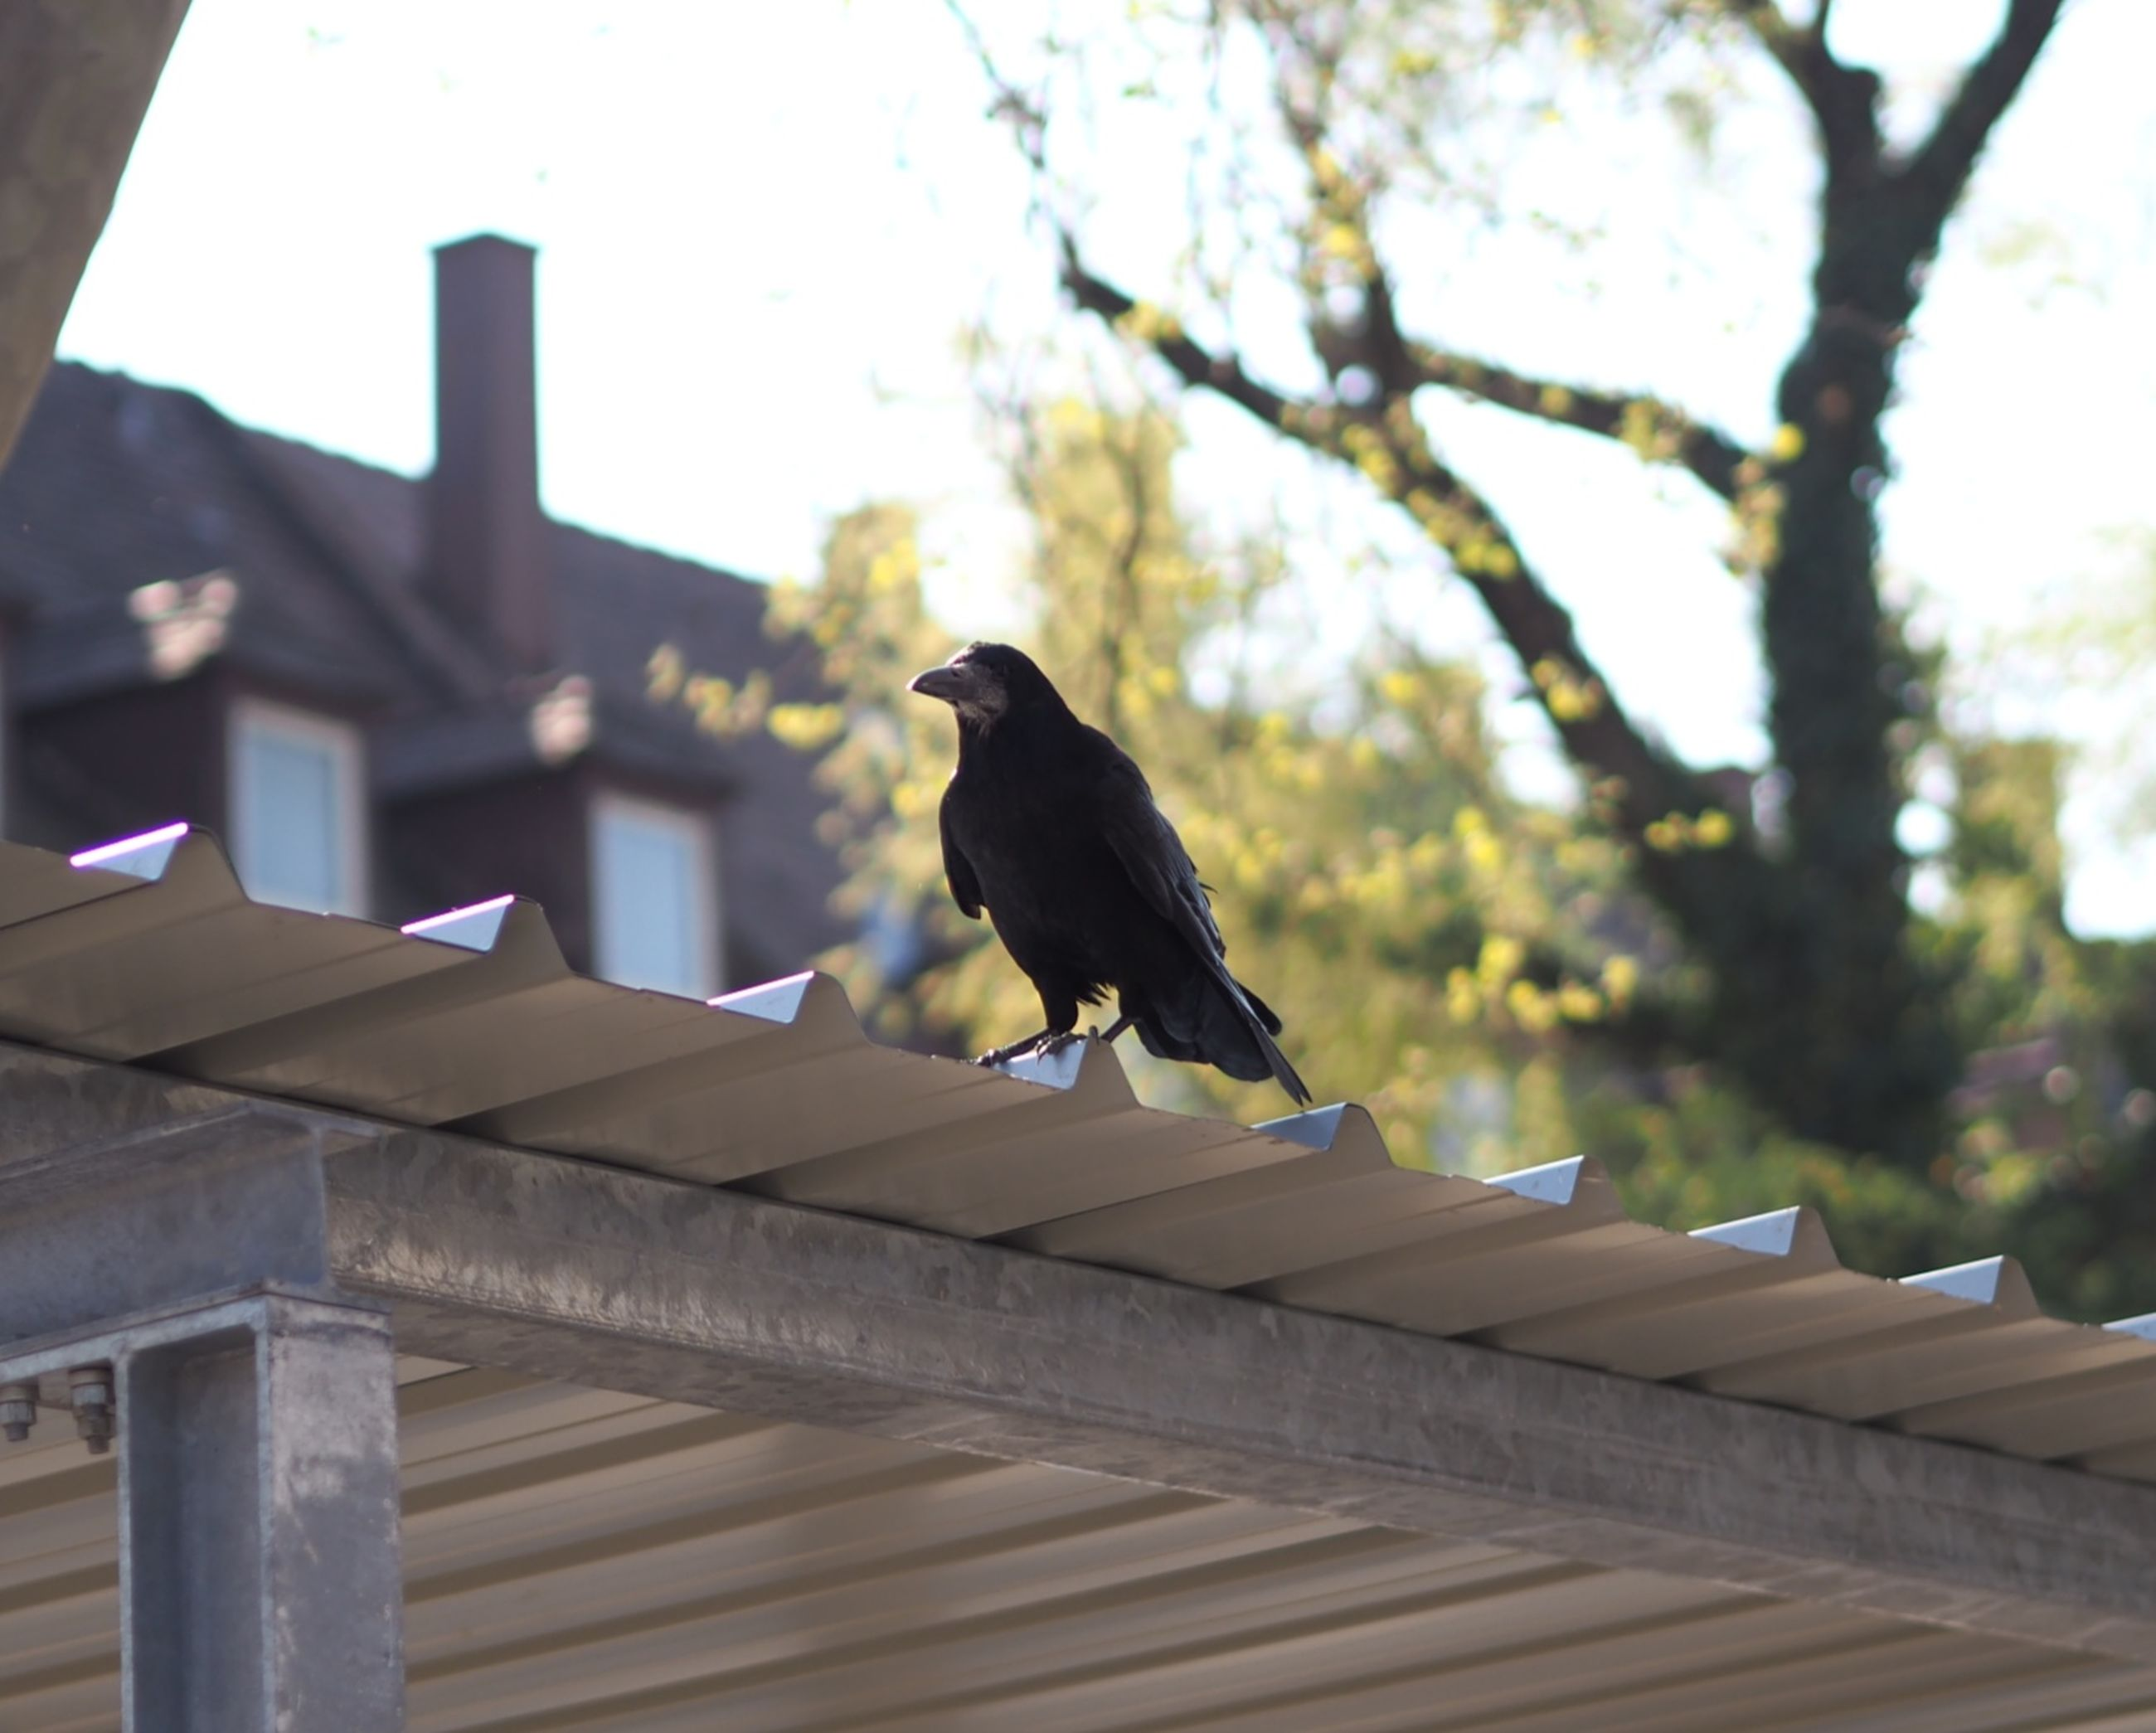 animal, animal themes, bird, animal wildlife, wildlife, one animal, perching, architecture, tree, nature, no people, day, built structure, outdoors, low angle view, roof, wood, focus on foreground, sky, raven, crow, branch, building exterior, plant